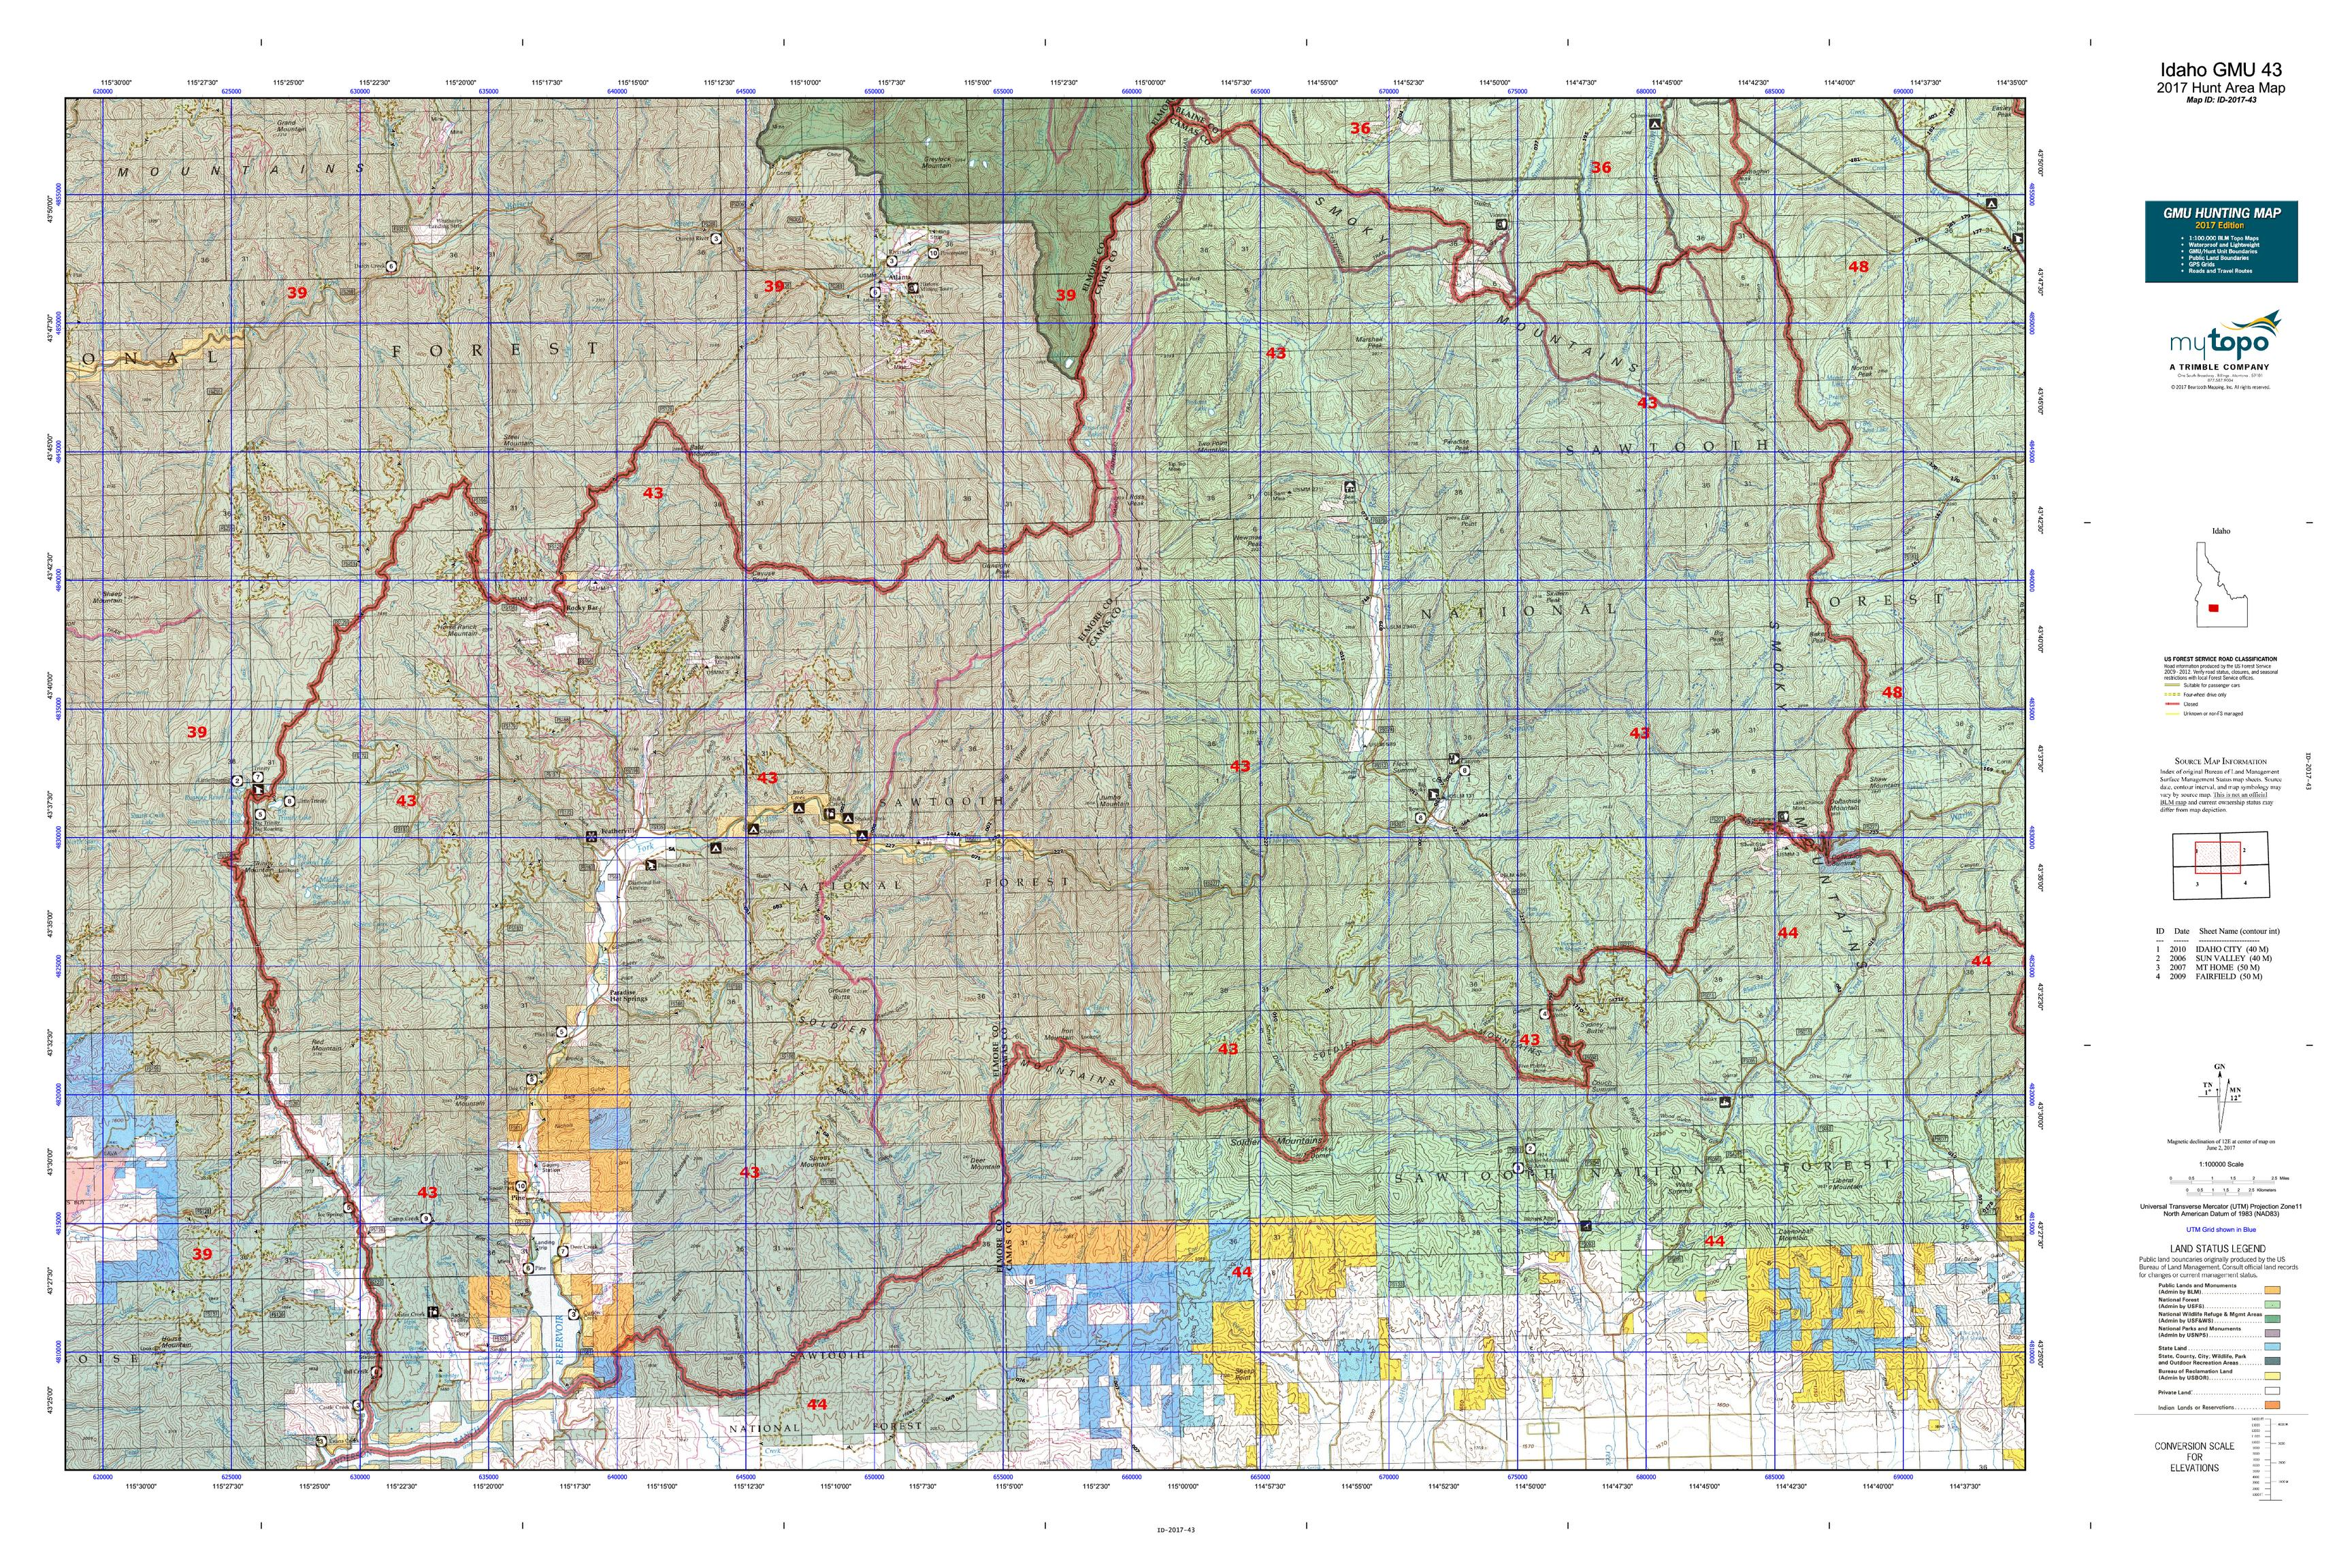 id preview image (click to view). idaho gmu  map  mytopo